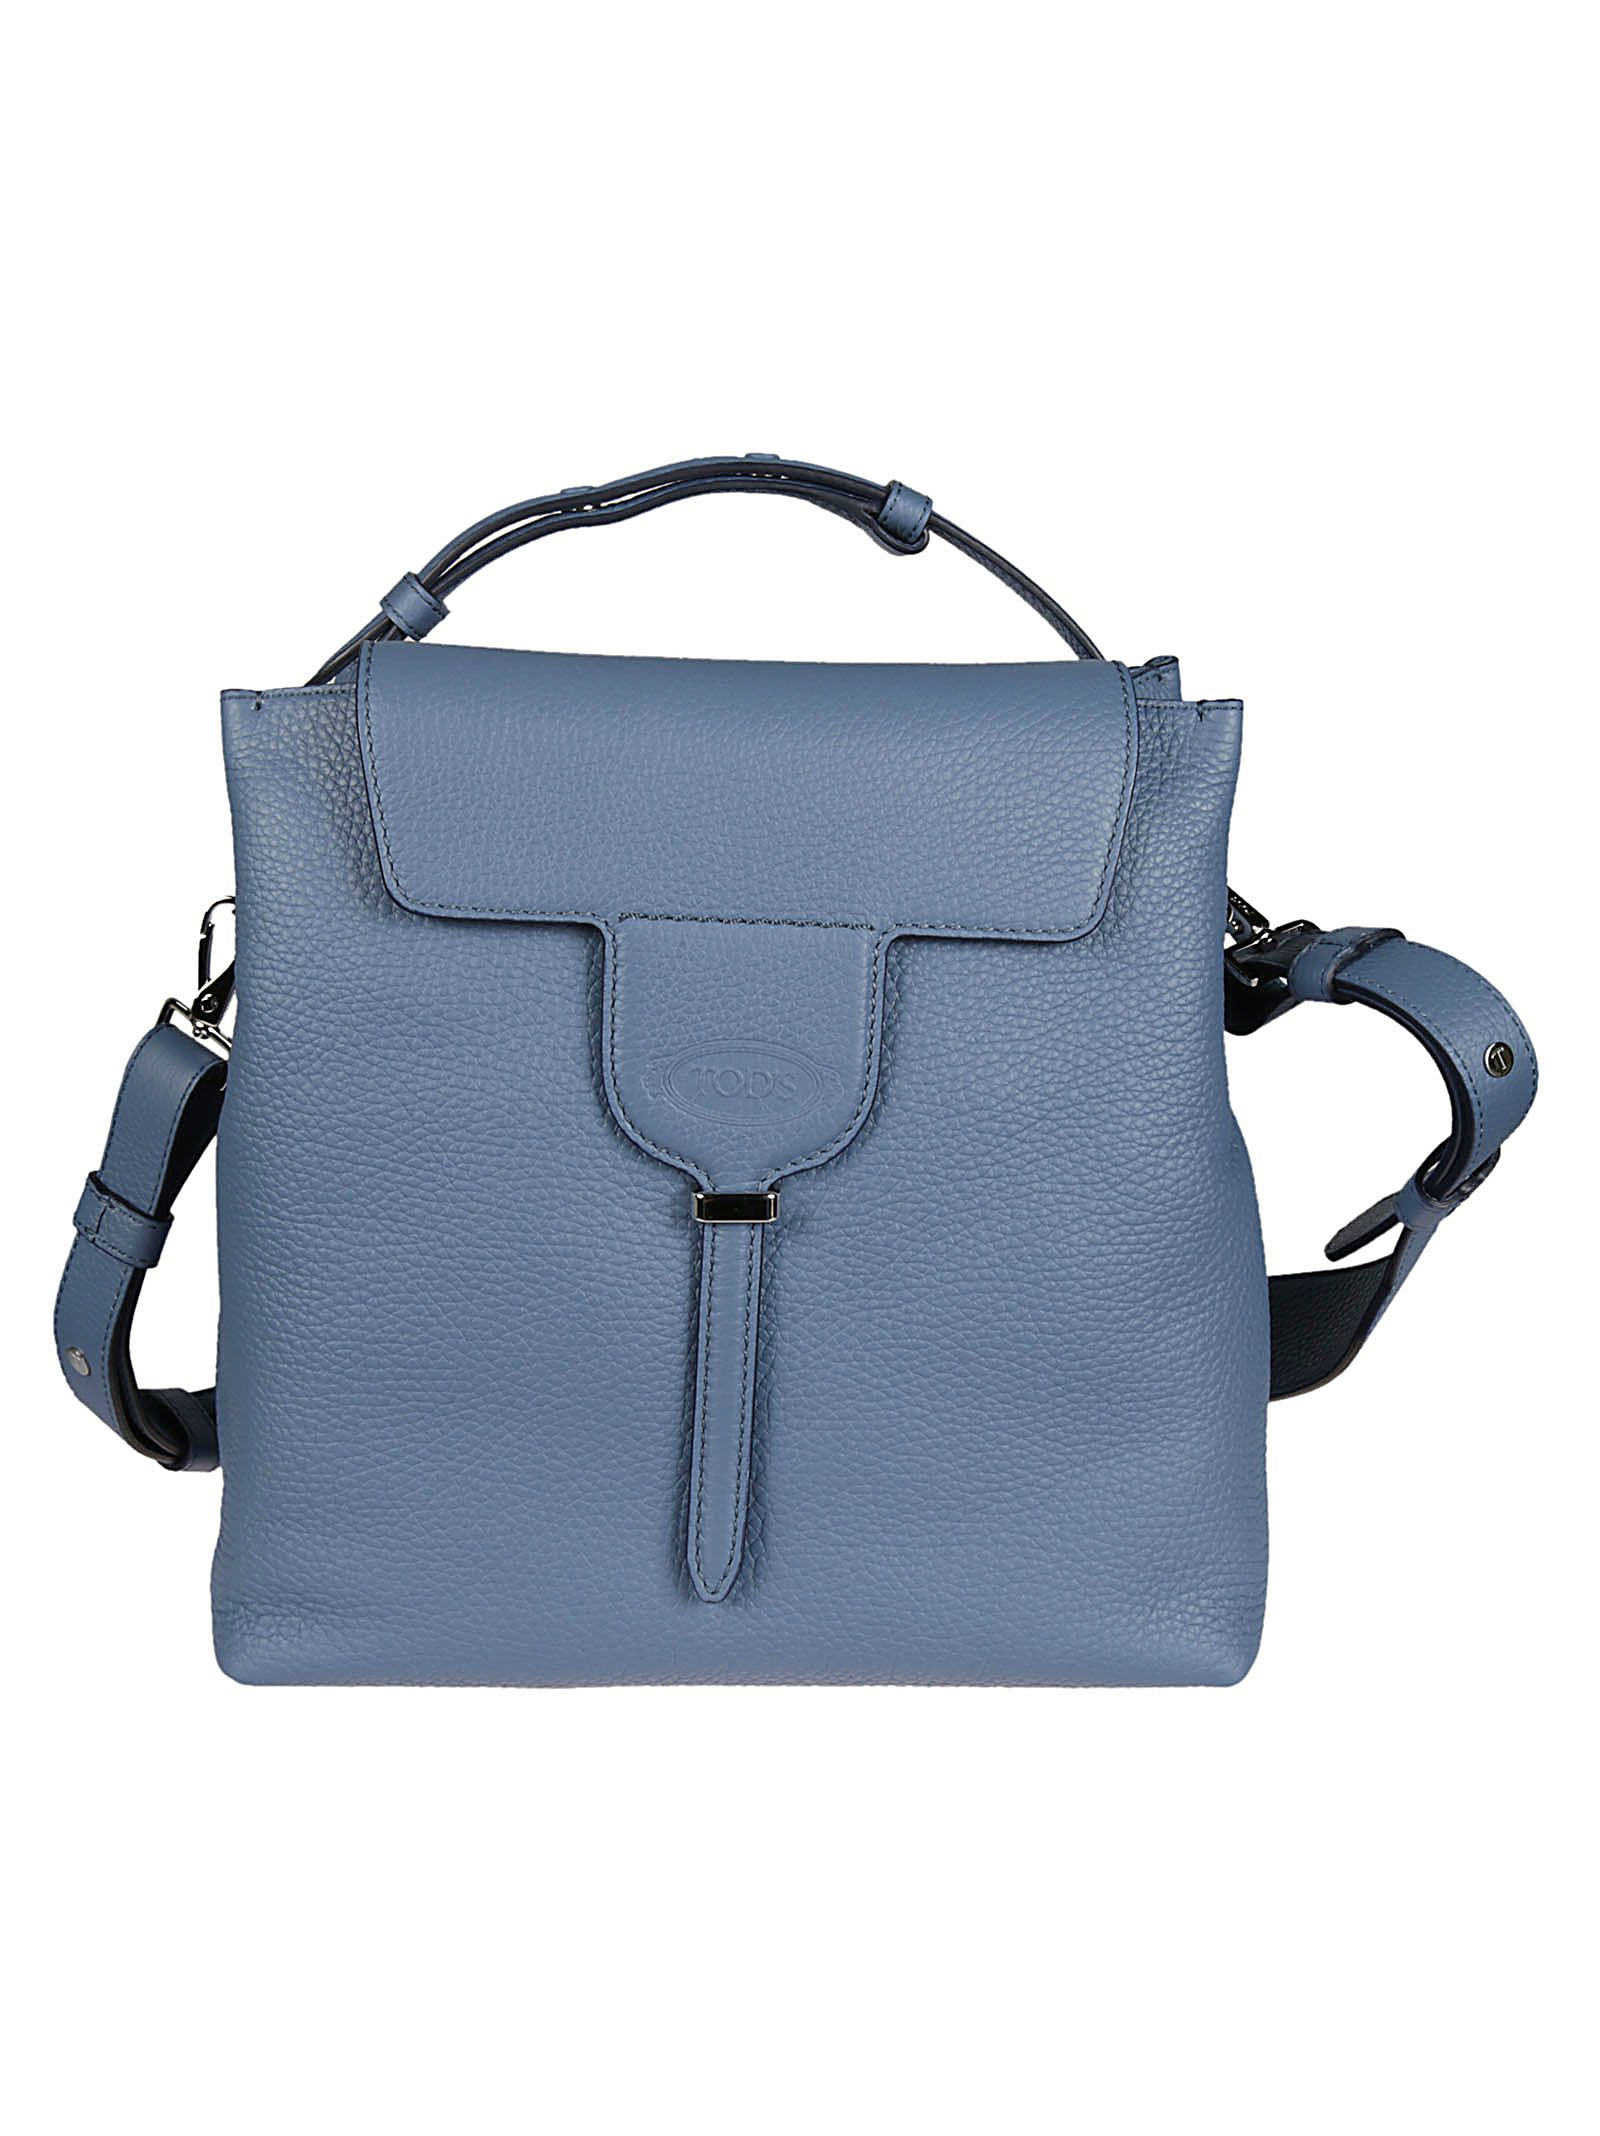 db1ba7e34f Tod's Tod's Joy Shoulder Bag - blue - 10716312 | italist